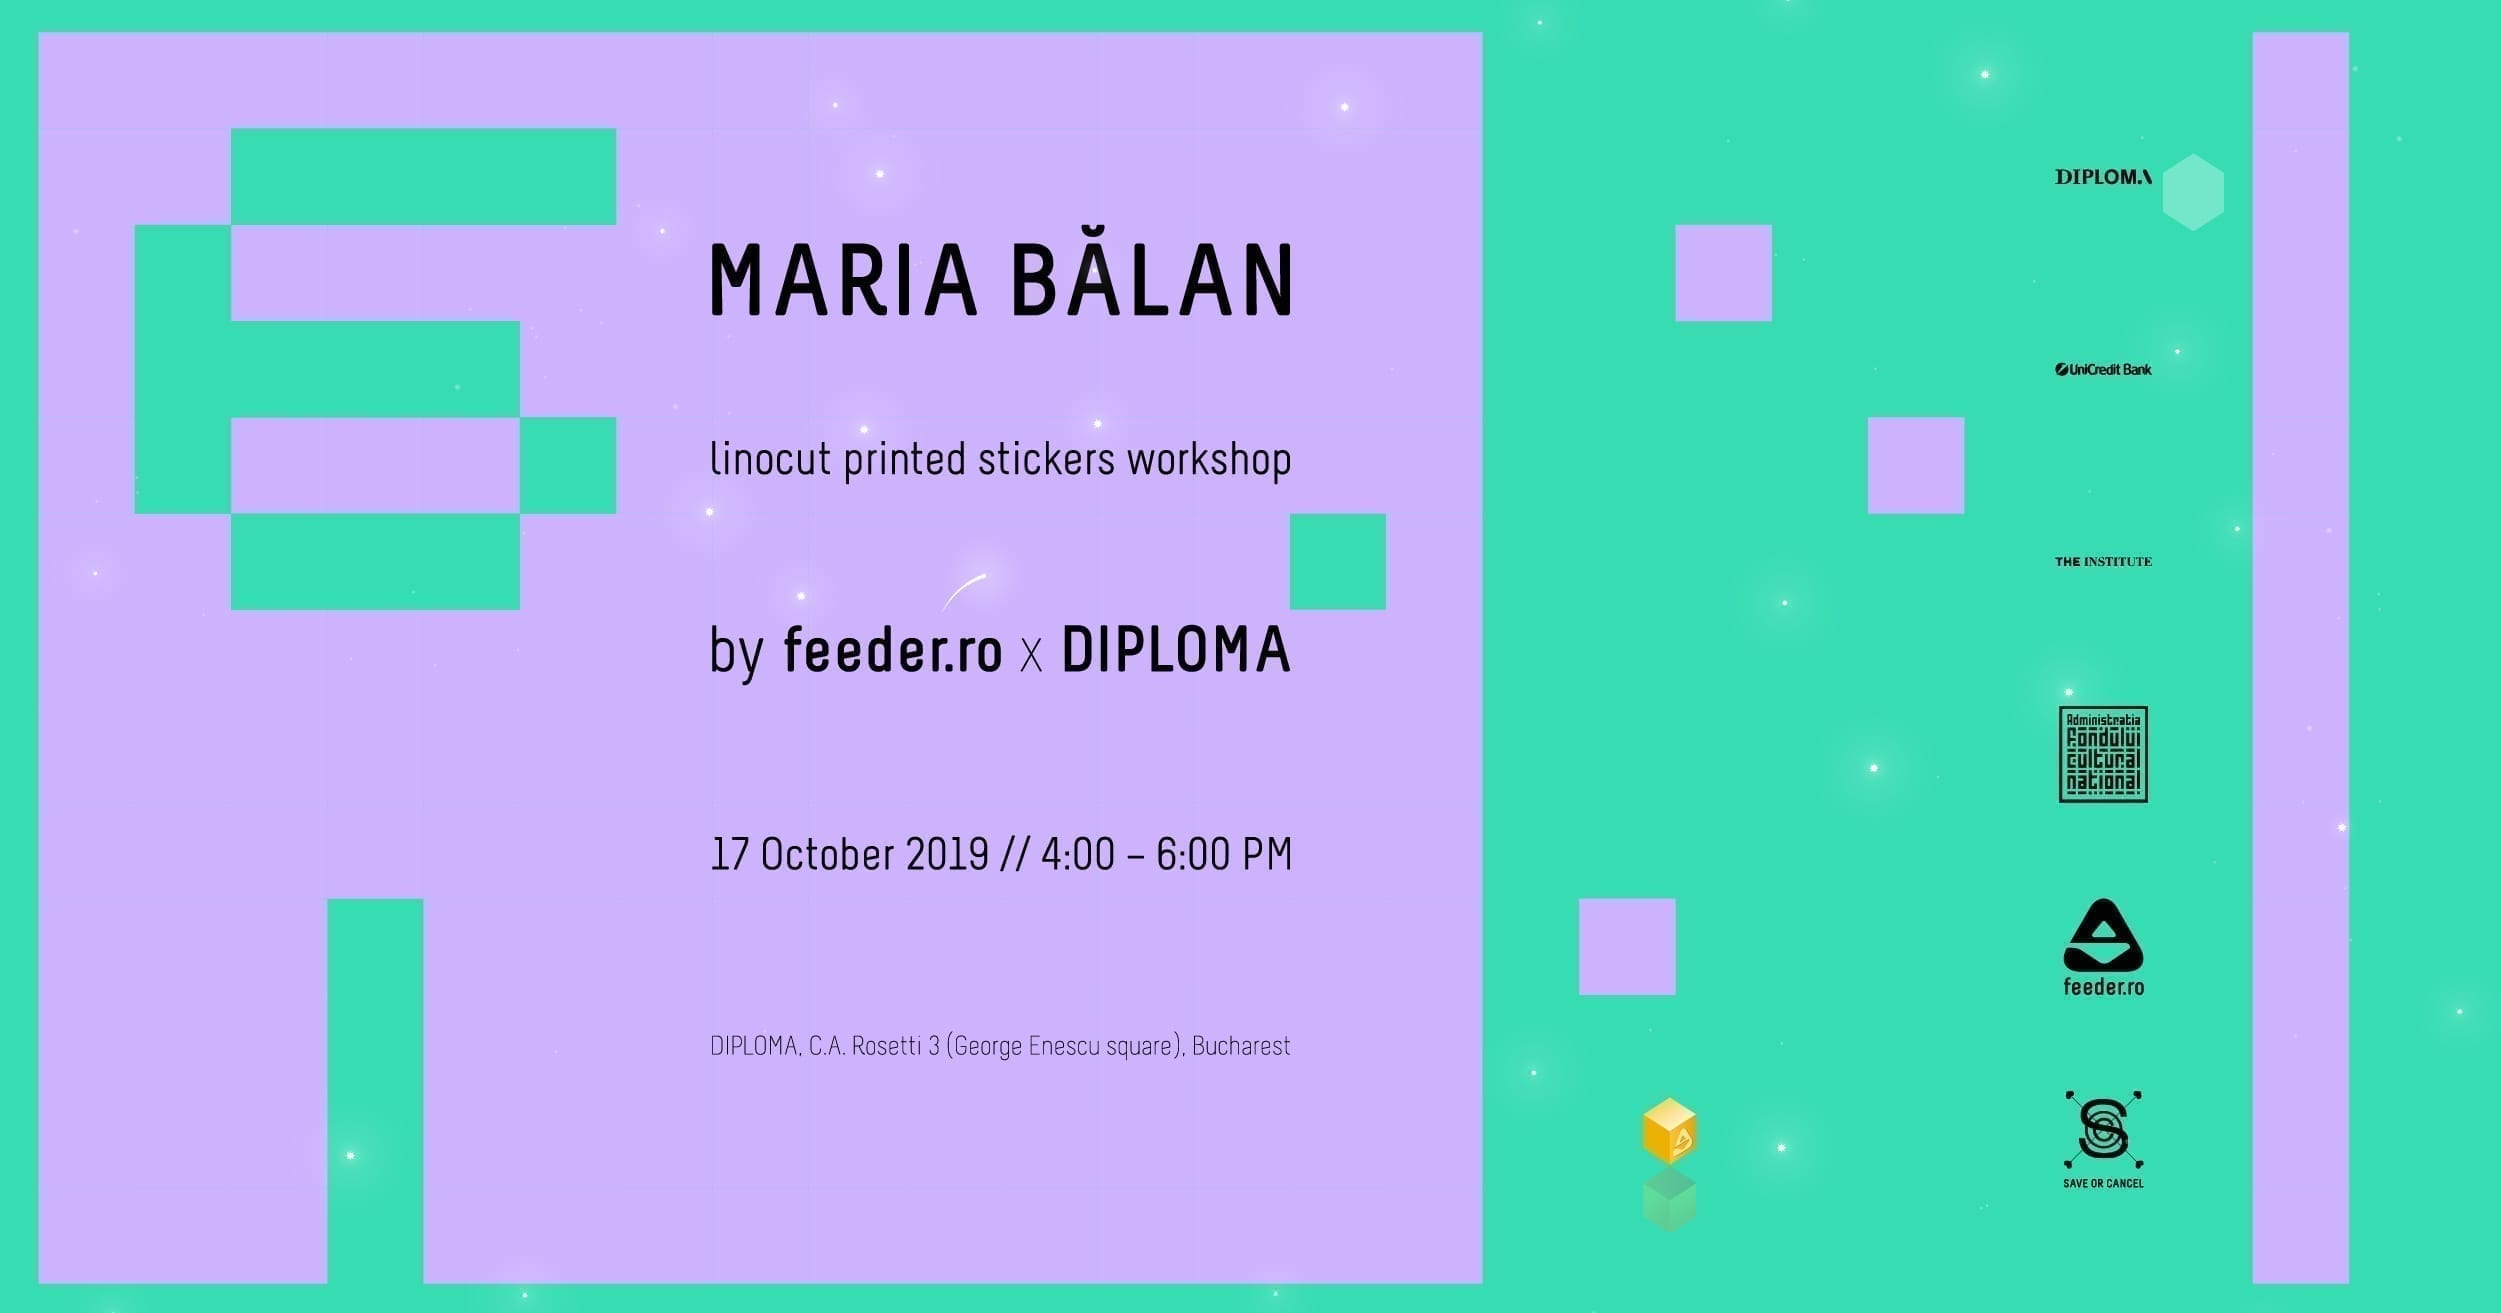 Maria Bălan - linocut printed stickers workshop by feeder.ro x DIPLOMA